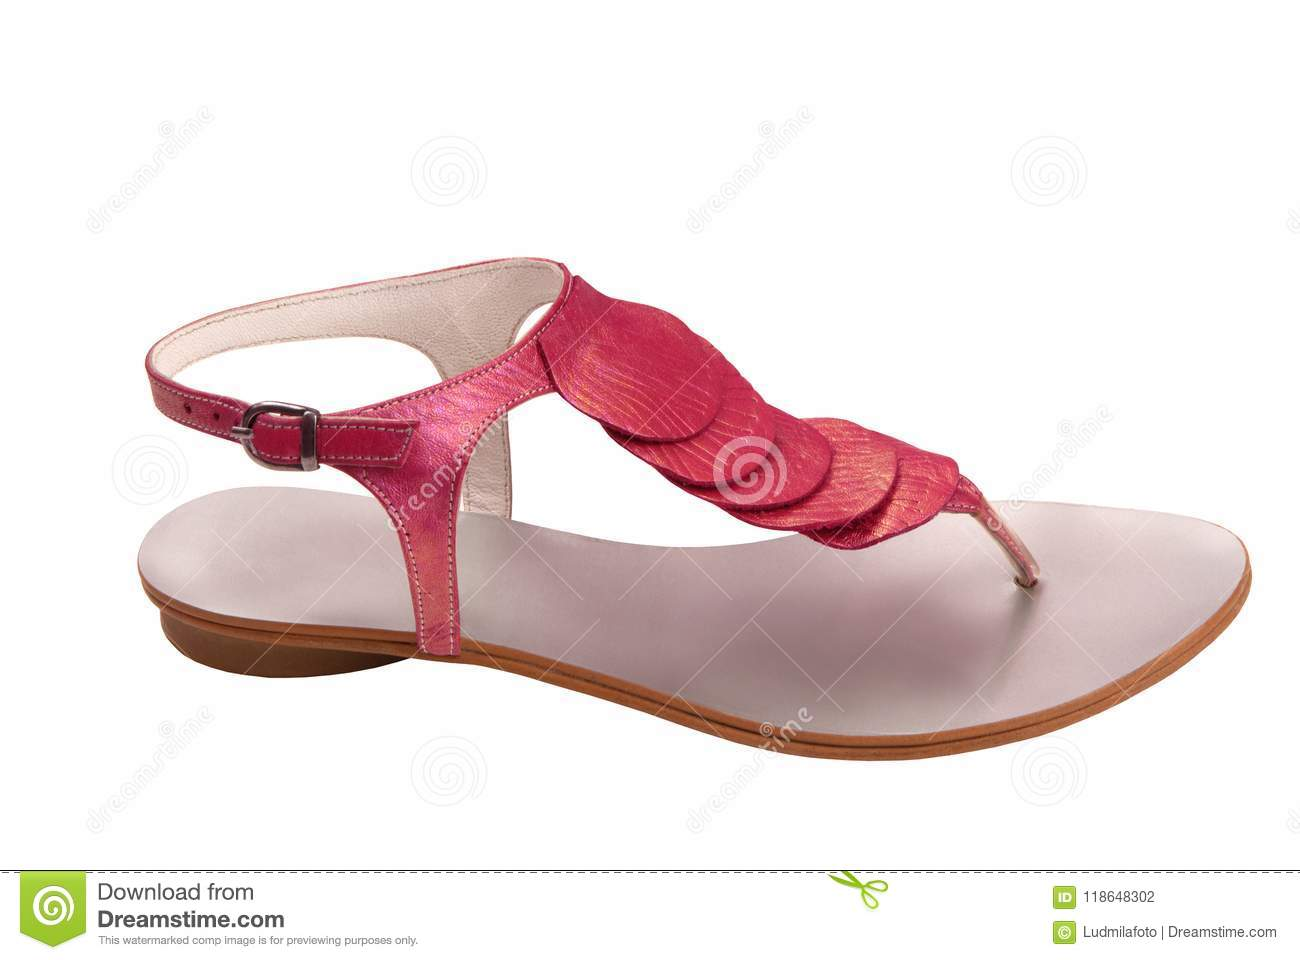 e3b064d5fb38b Leather Female Sandals Is On White Stock Photo - Image of beautiful ...